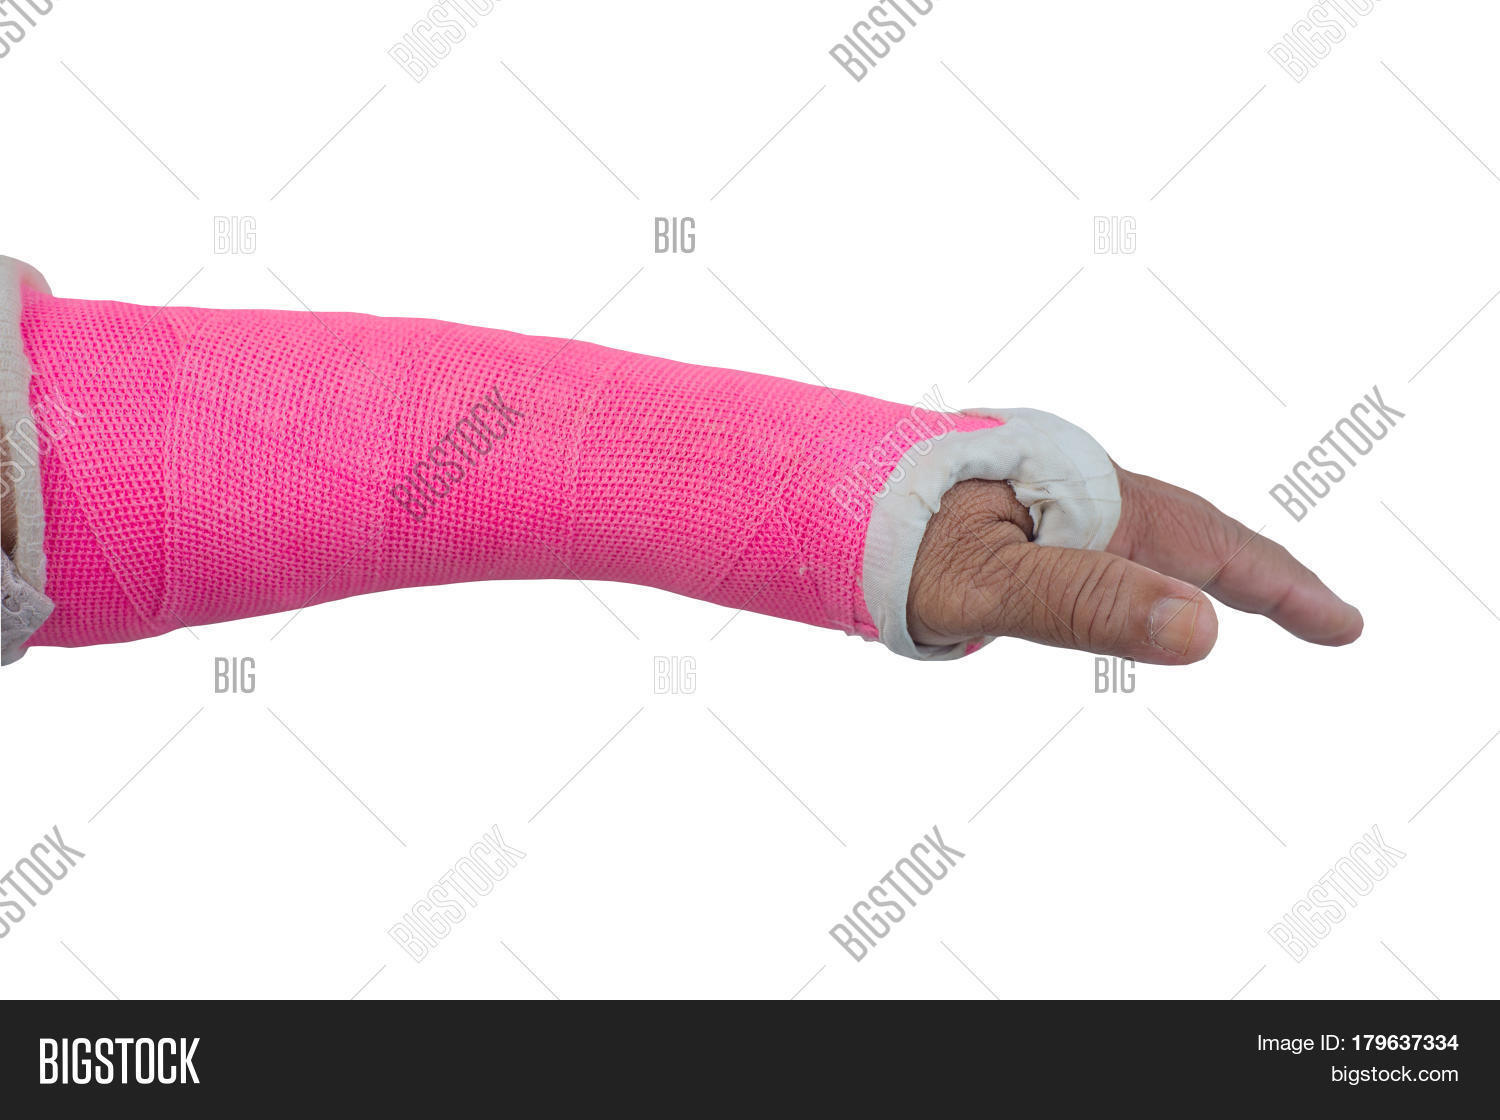 Arm Splint Be Plaster Image & Photo (Free Trial) | Bigstock